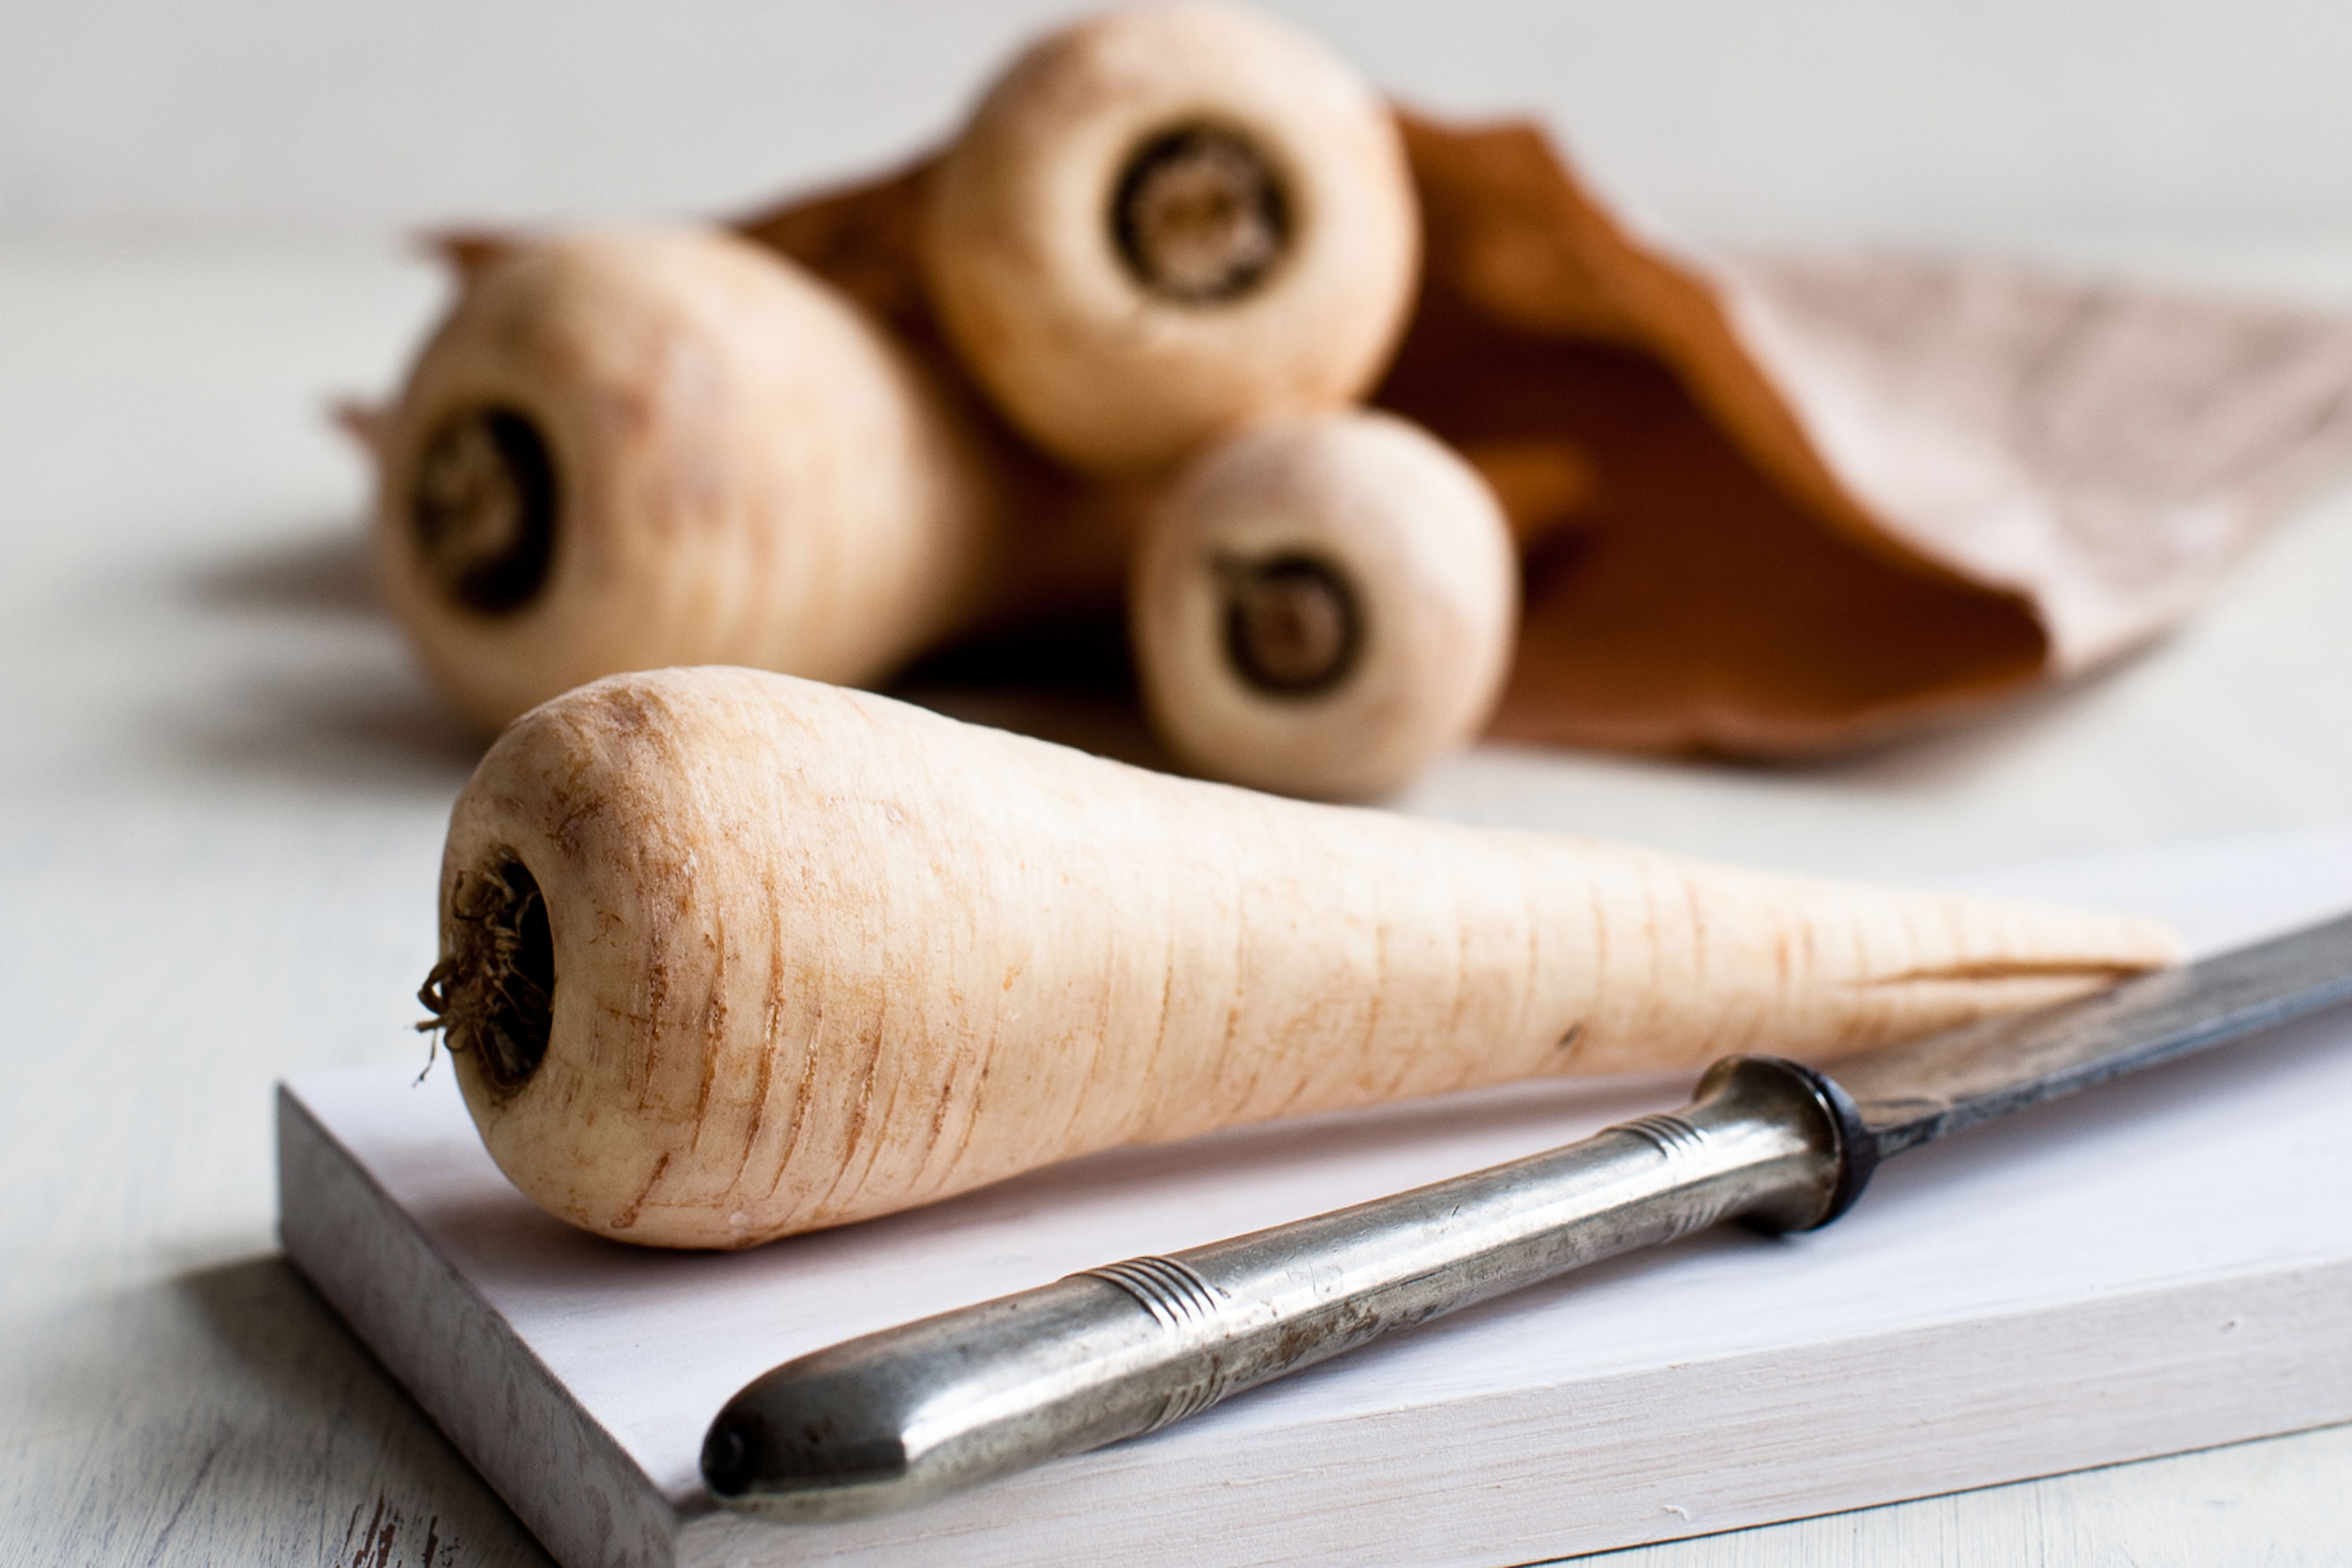 <strong>Parsnips:</strong> Yes, even foods that aren't green can withstand the cold. The pale parsnip, which looks like a yellow-white carrot, is best harvested after a hard frost, Casanova says.